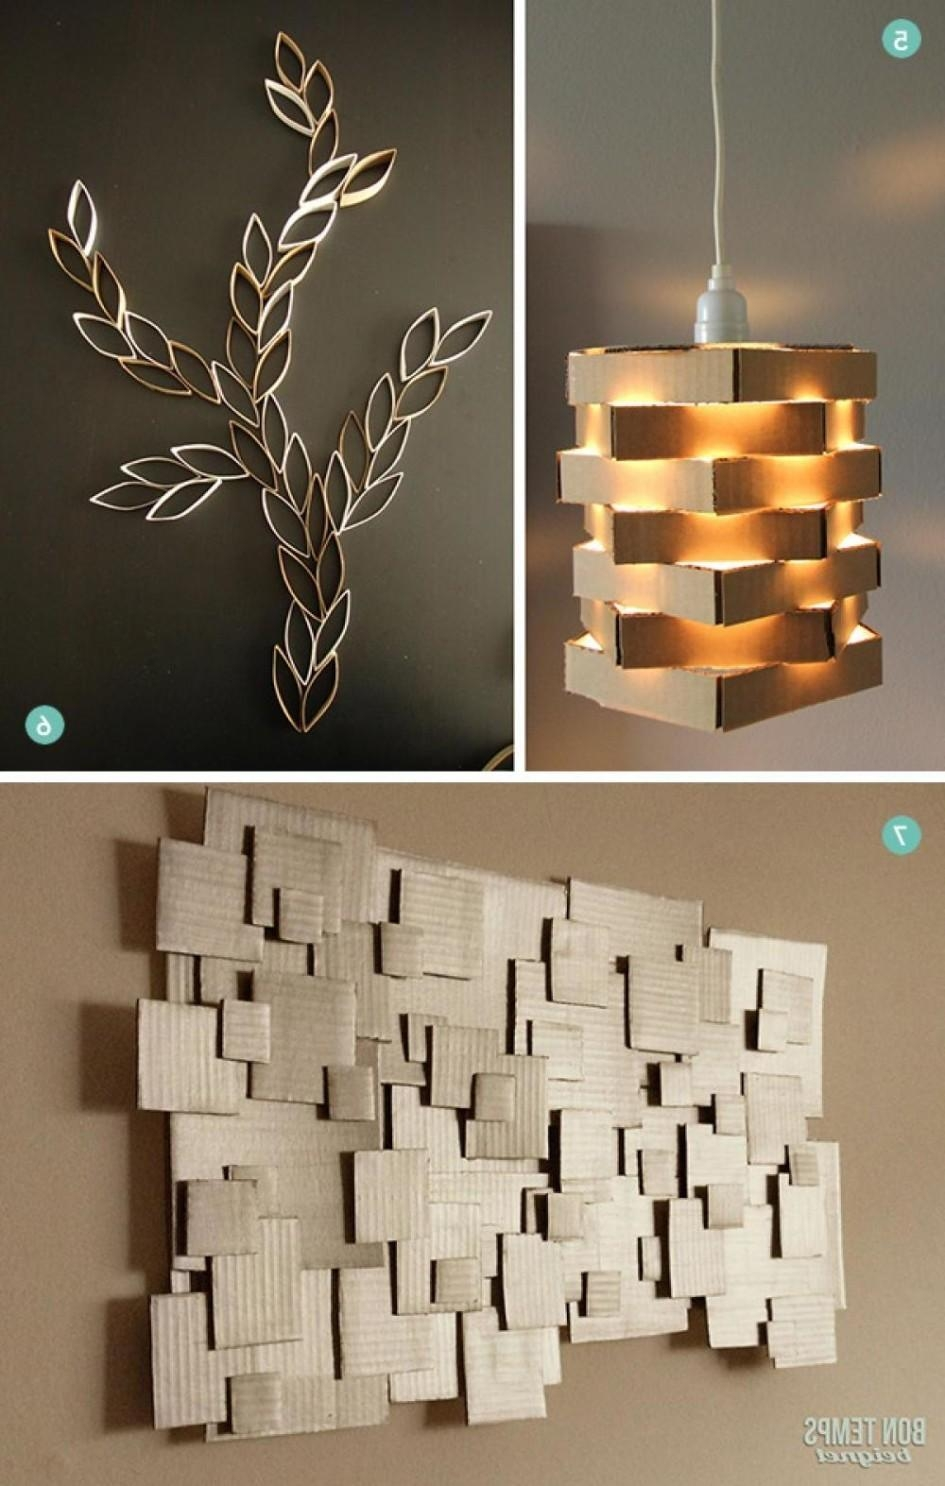 Grand Interior Room Design Ideas With Unique Diy Modern Art Style Intended For Unique Modern Wall Art (Image 7 of 20)